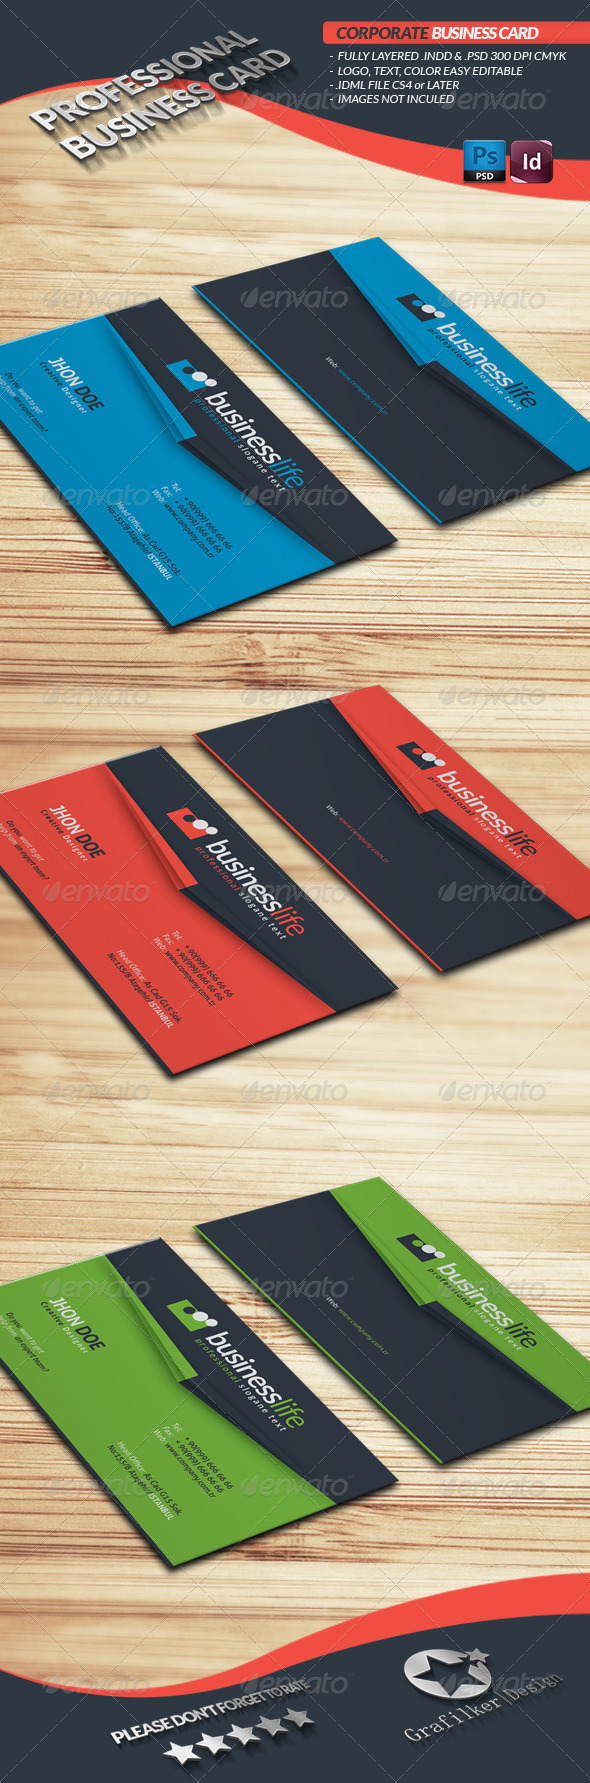 GraphicRiver Corporate Business Card 4070936